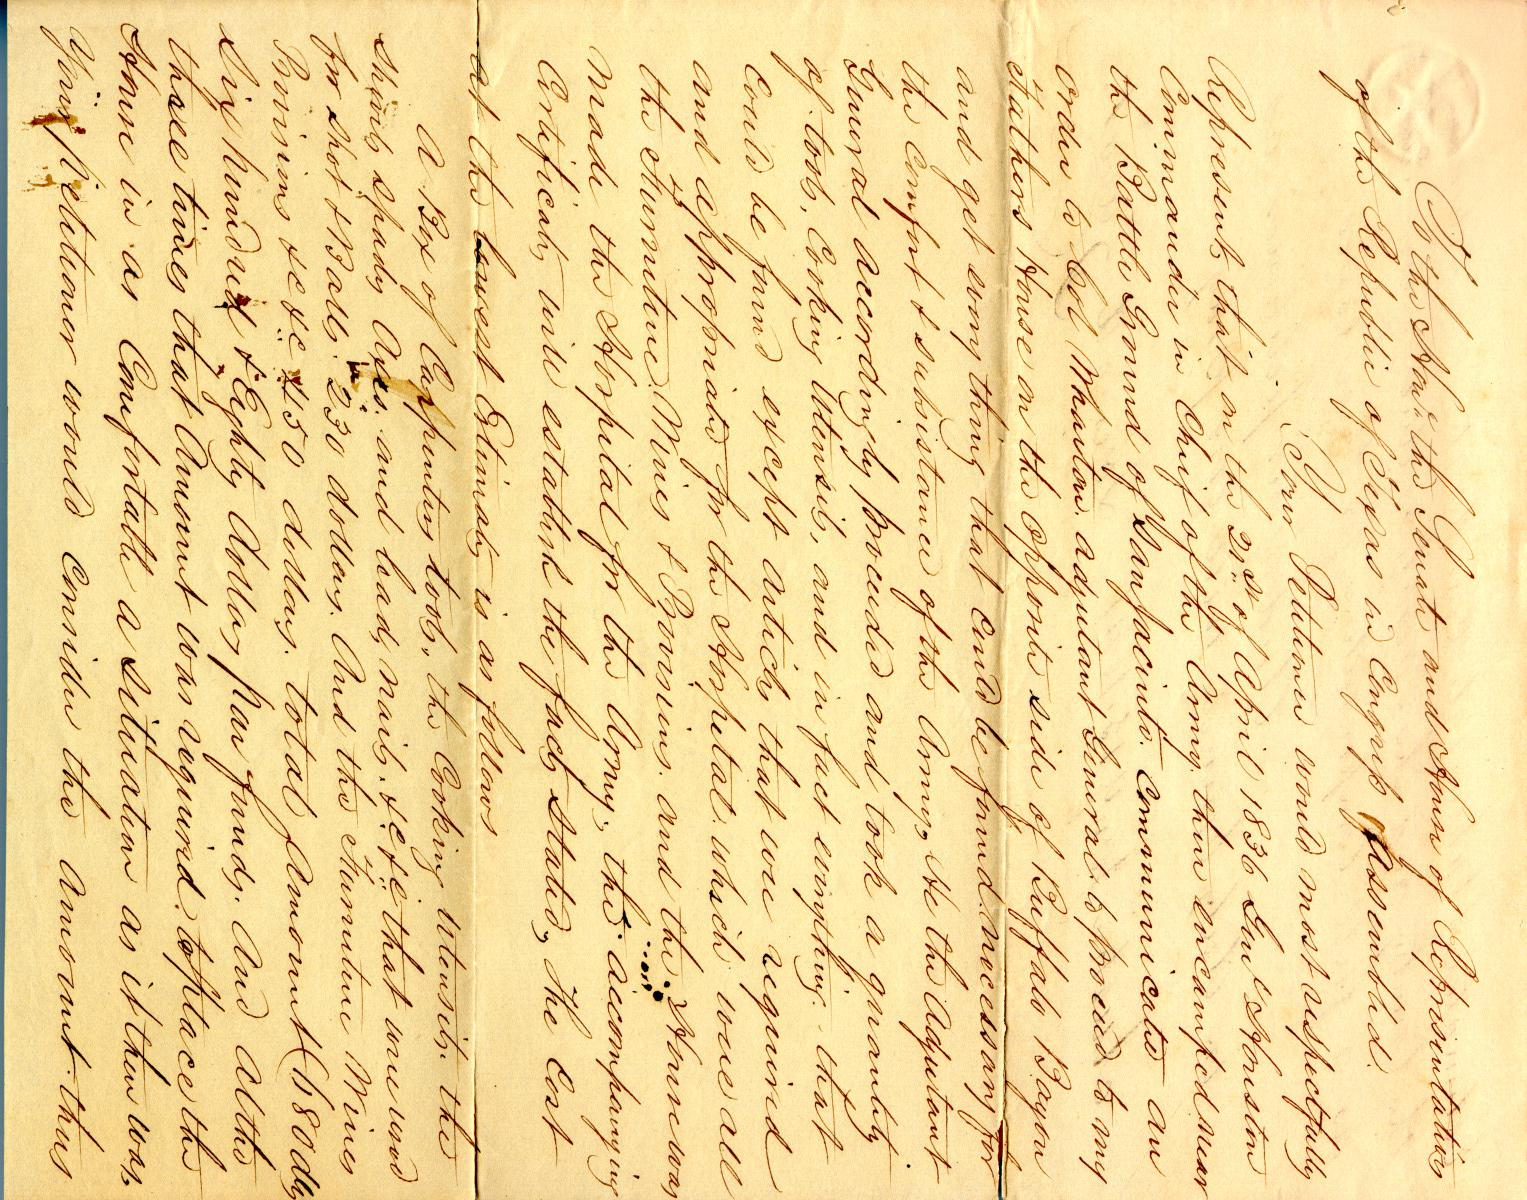 Petition by Lorenzo de Zavala Jr. January 15th 1841                                                                                                      [Sequence #]: 1 of 2